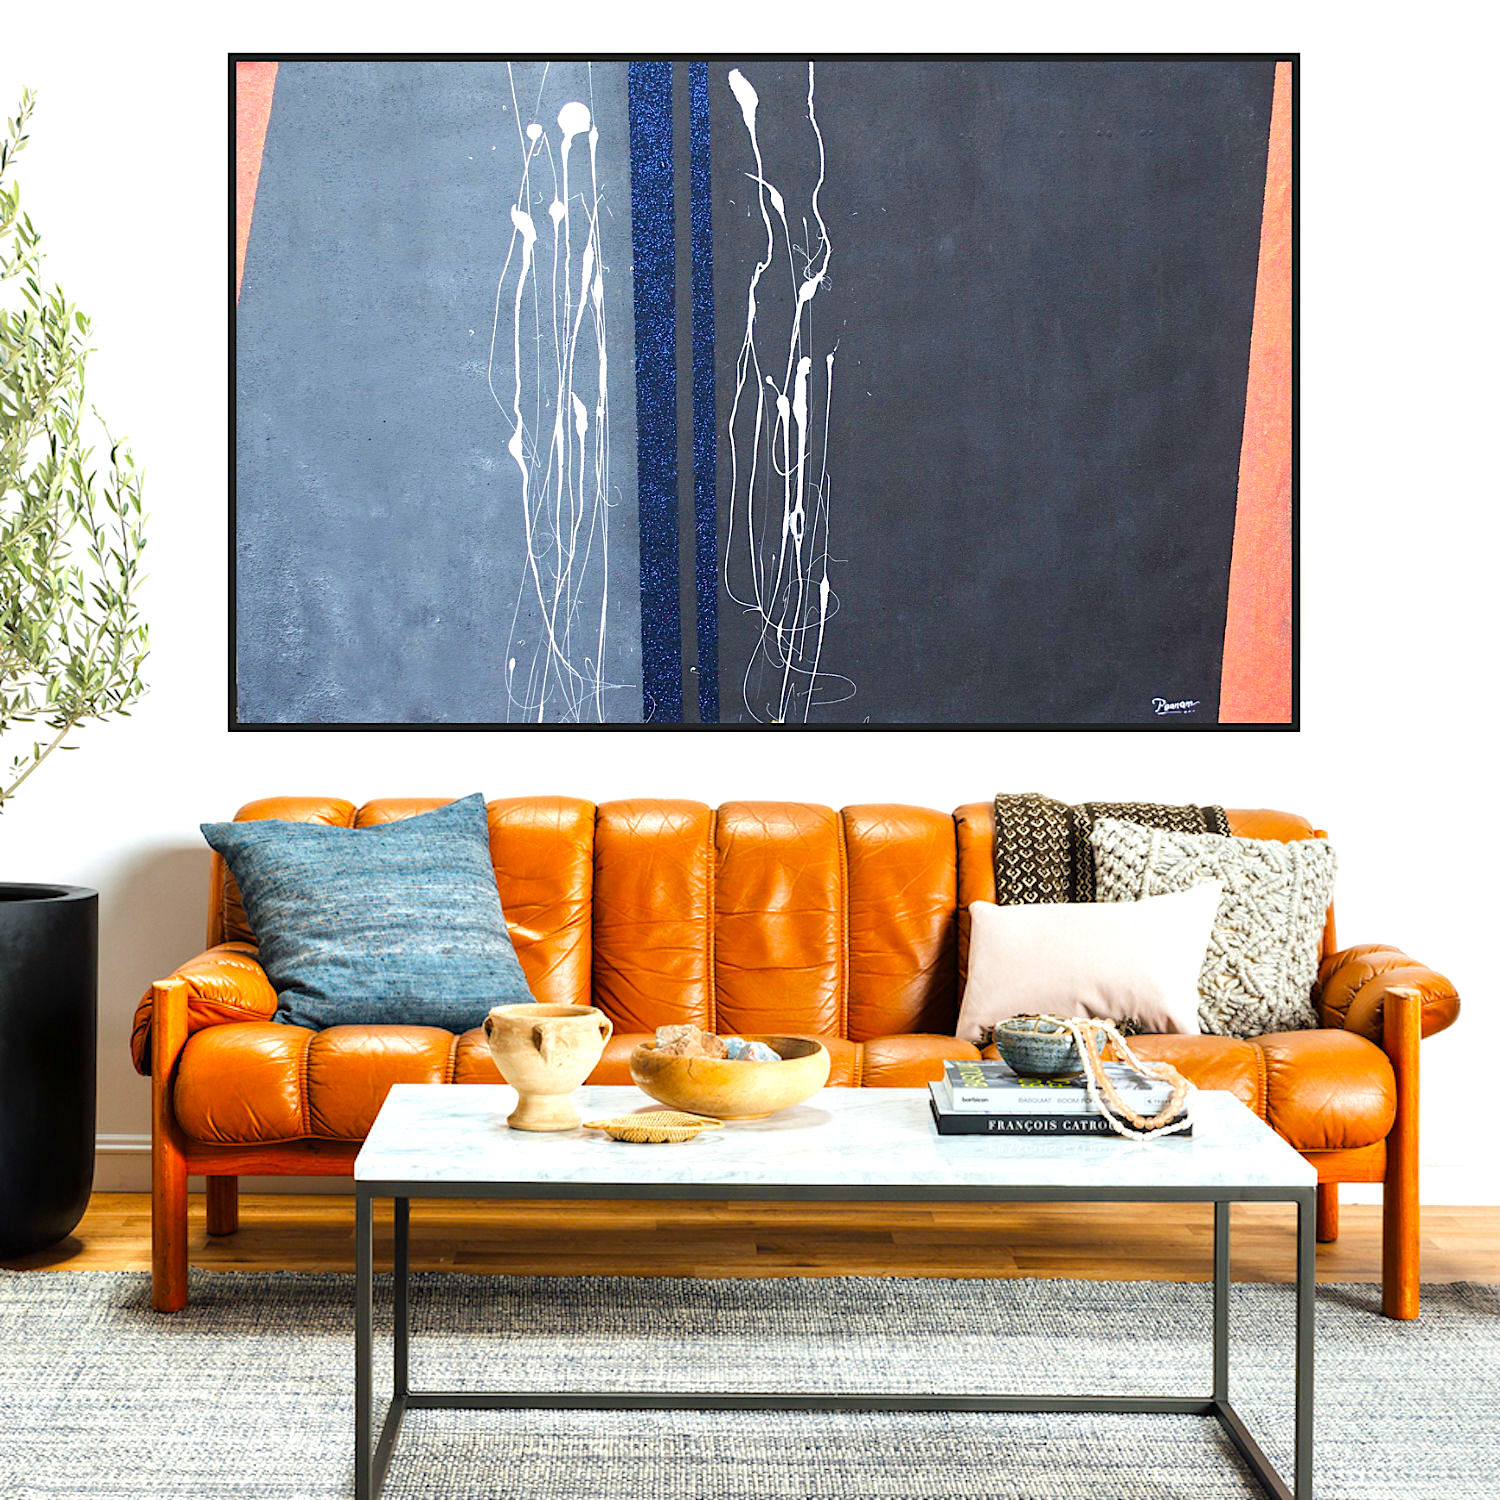 How to curate and display art for your home